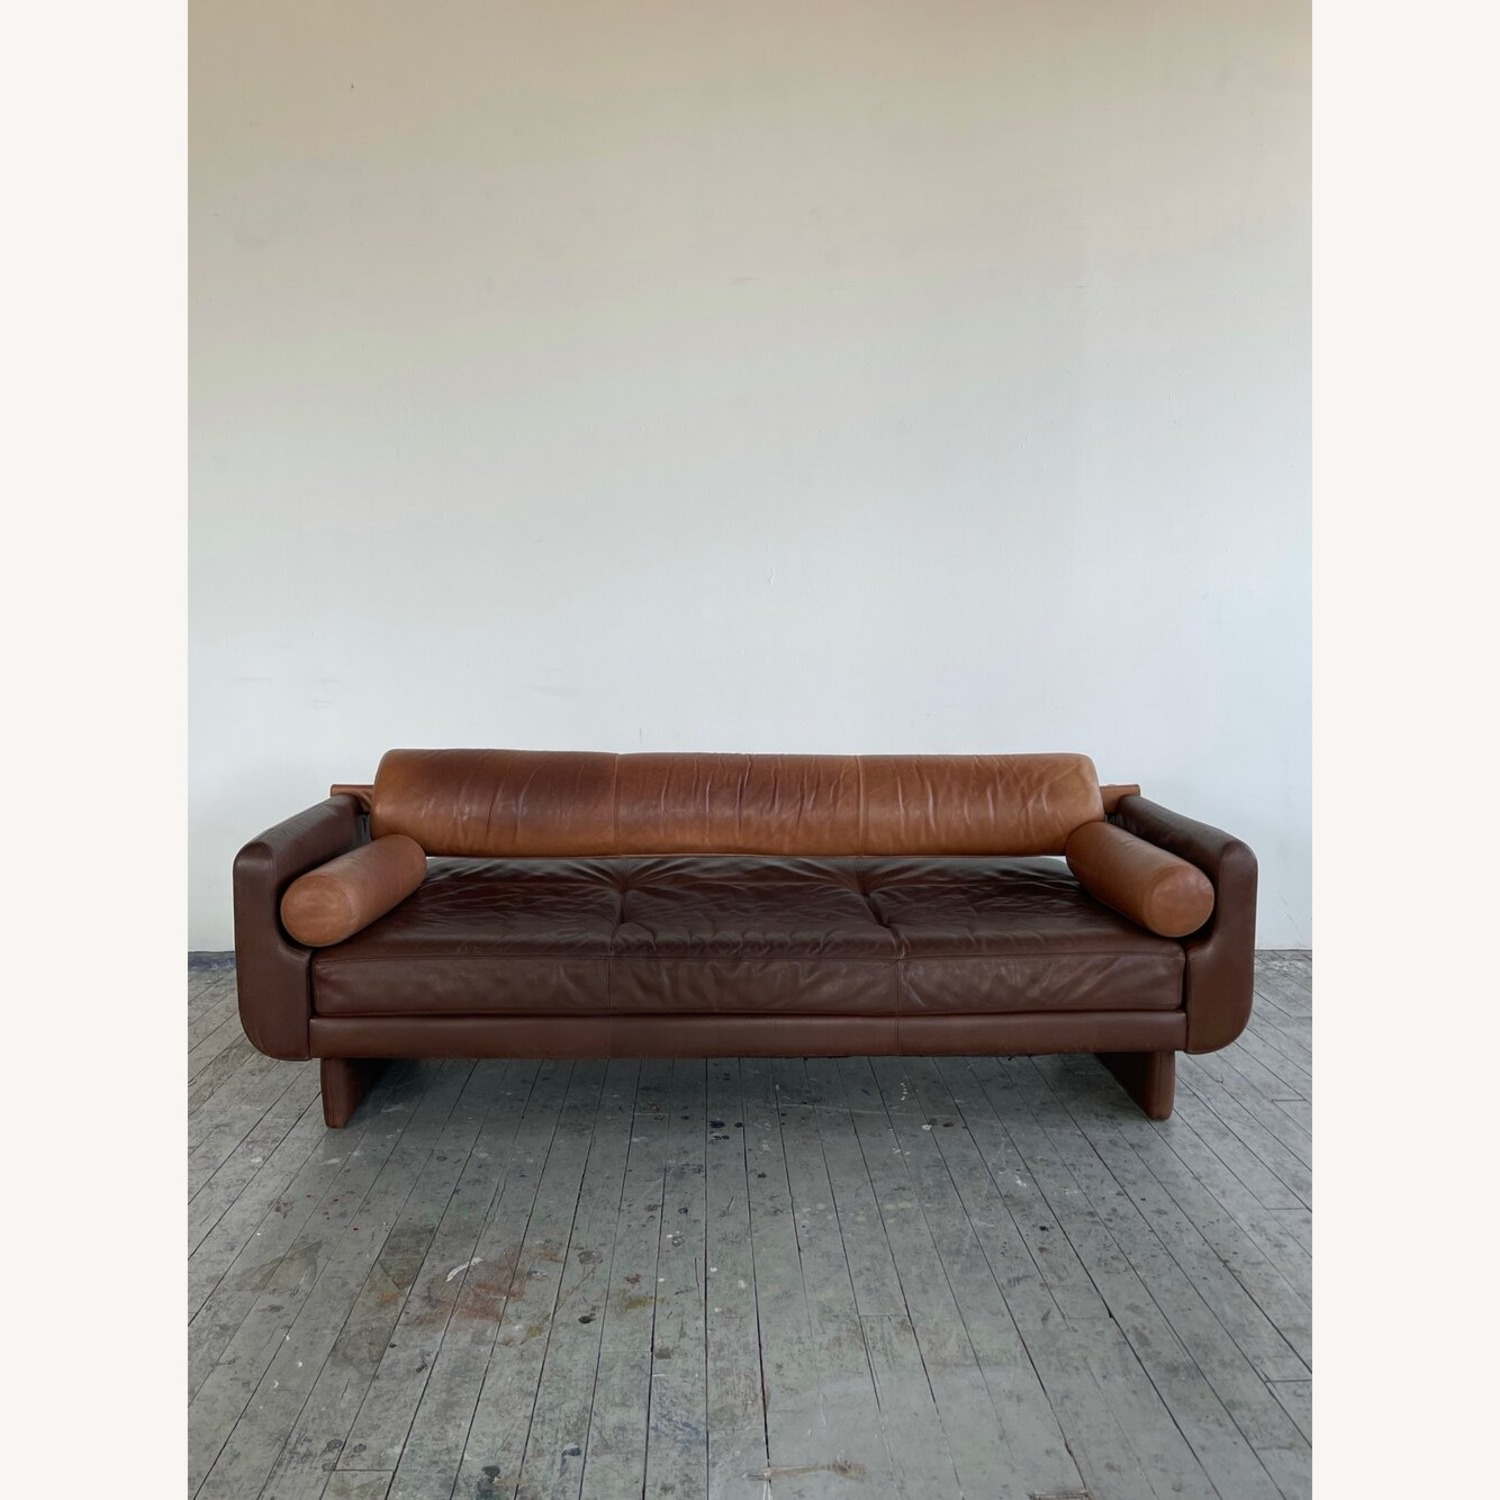 American Leather Daybed Sofa - image-1